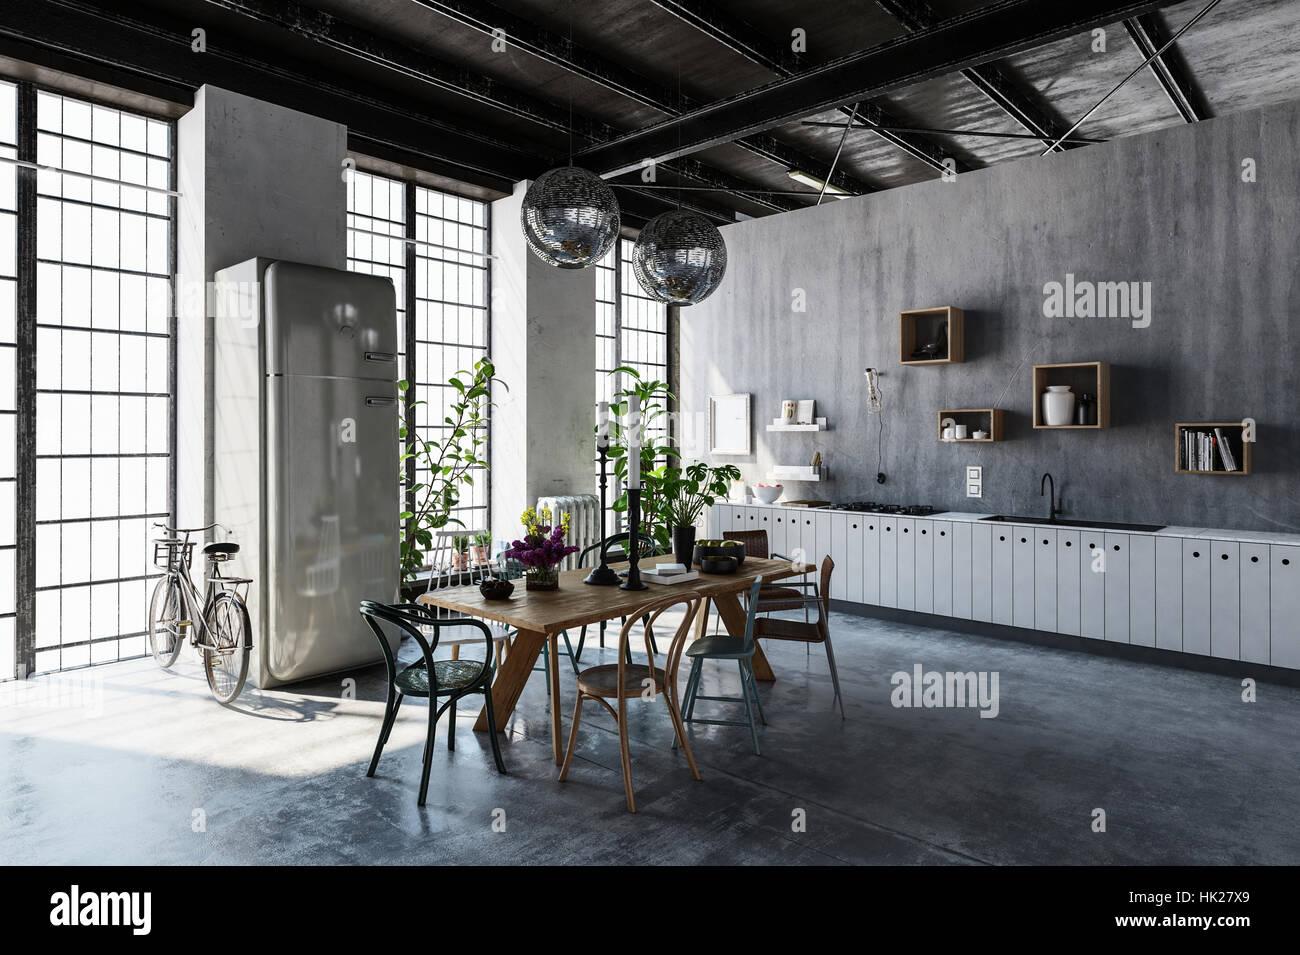 Interior of spacious modern apartment with dining table, chairs and bicycle leaning by tall windows Stock Photo